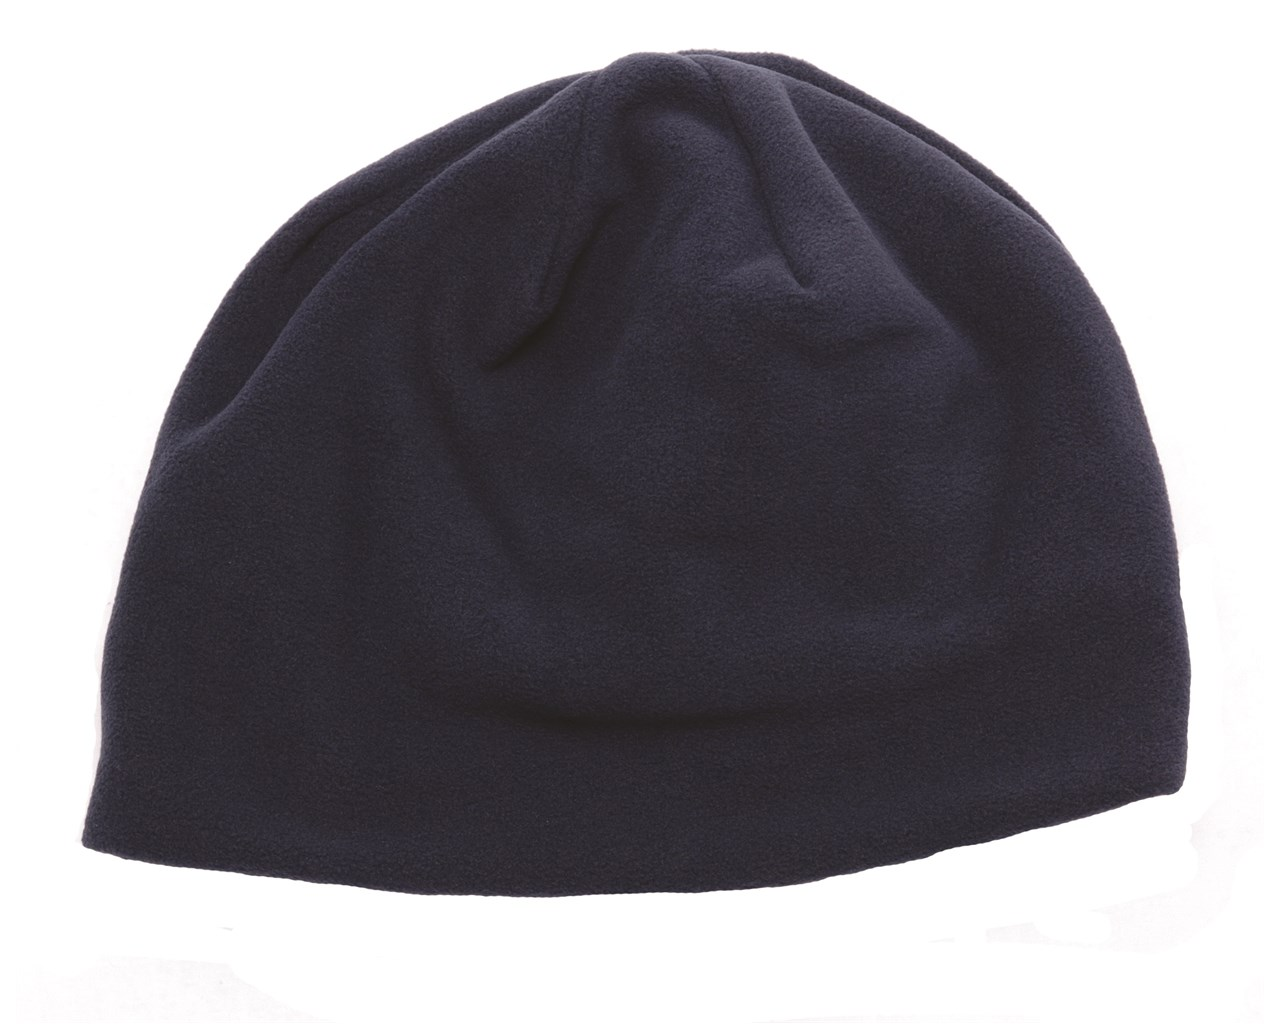 9518379ab Regatta TRC147 Thinsulate Fleece Hat For Cold Weather - Navy